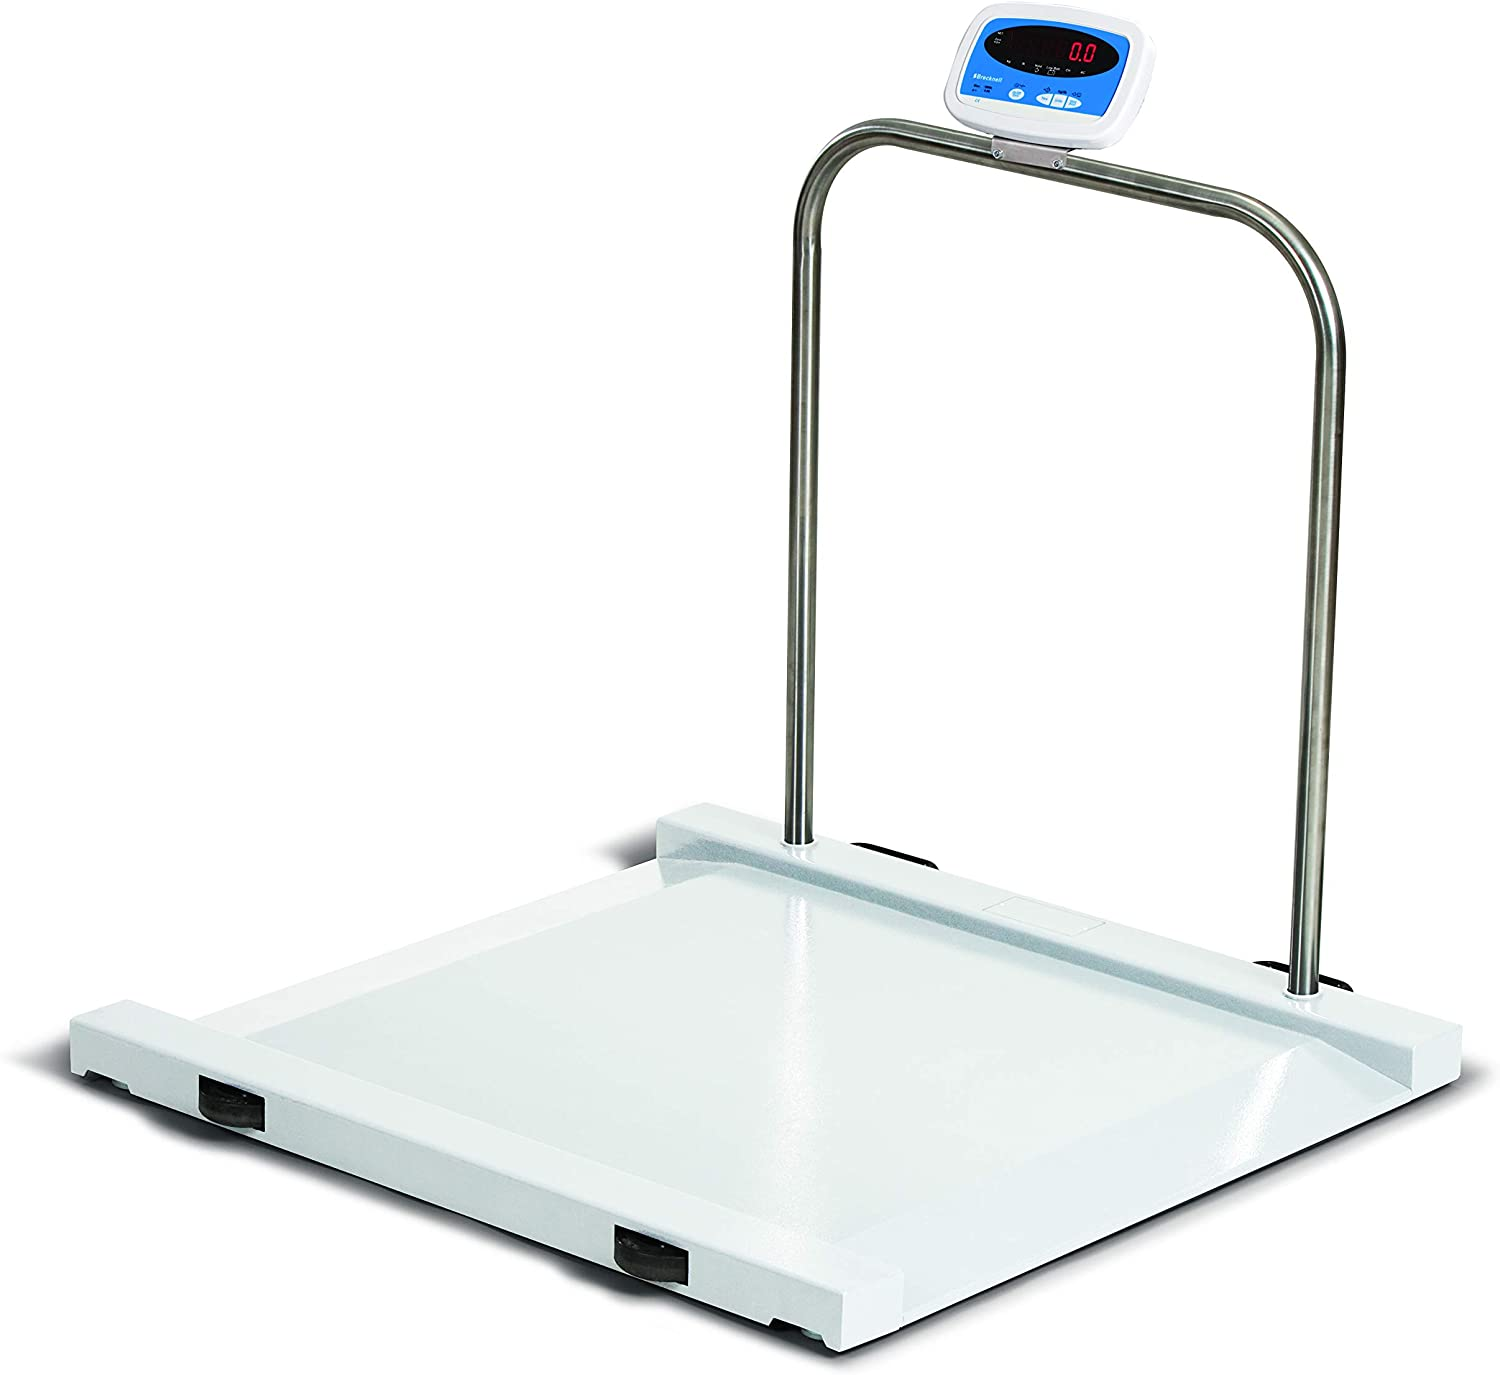 1000 LB x 0.5 LB Salter Brecknell MS-1000 Bariatric Handrail Medical Health Scale